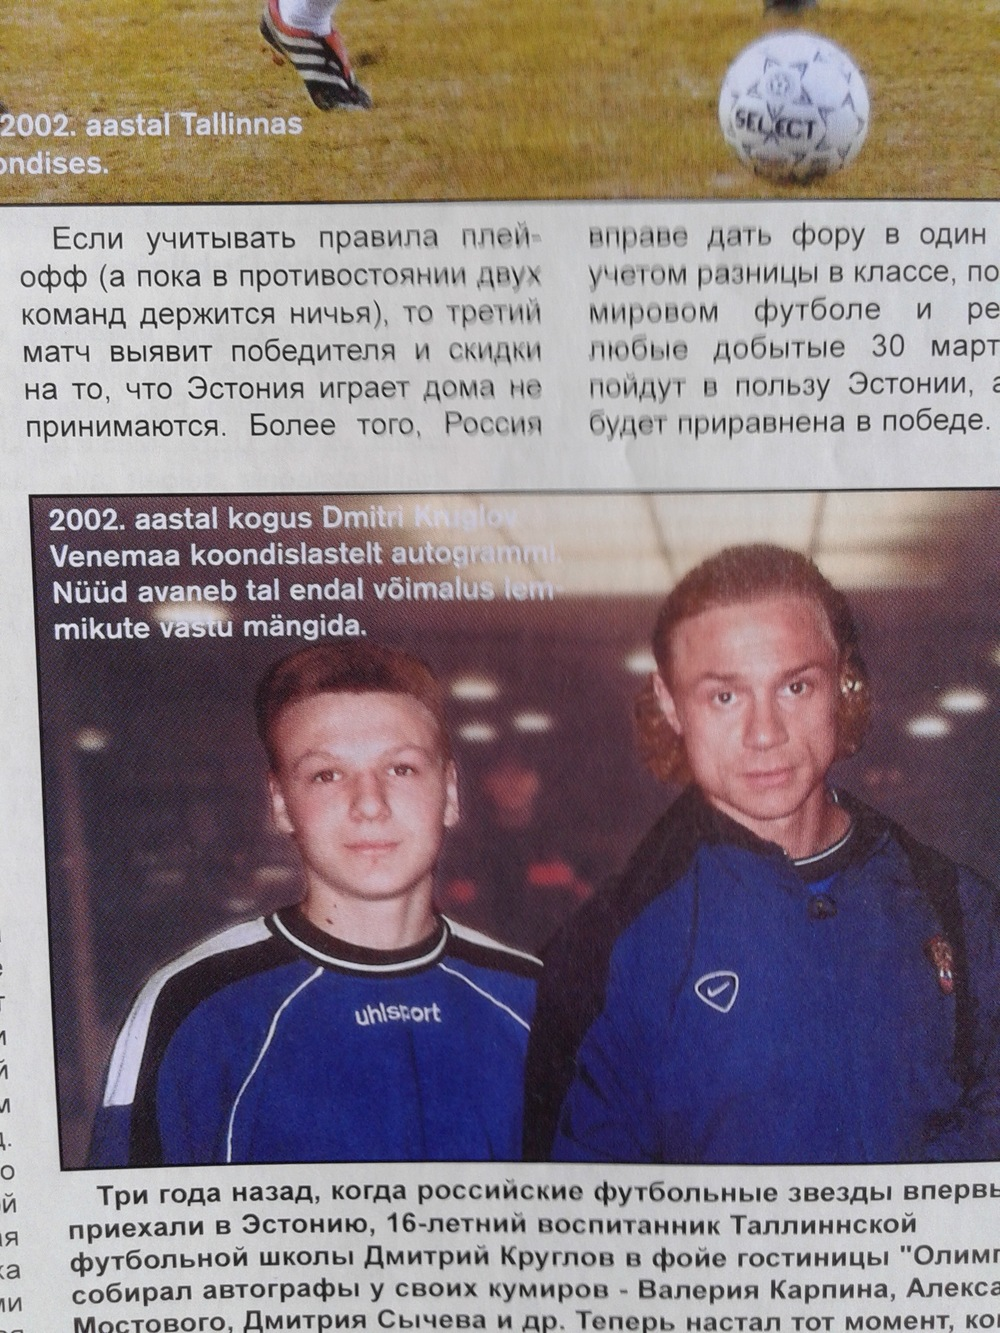 A young Kruglov with Valeri Karpin